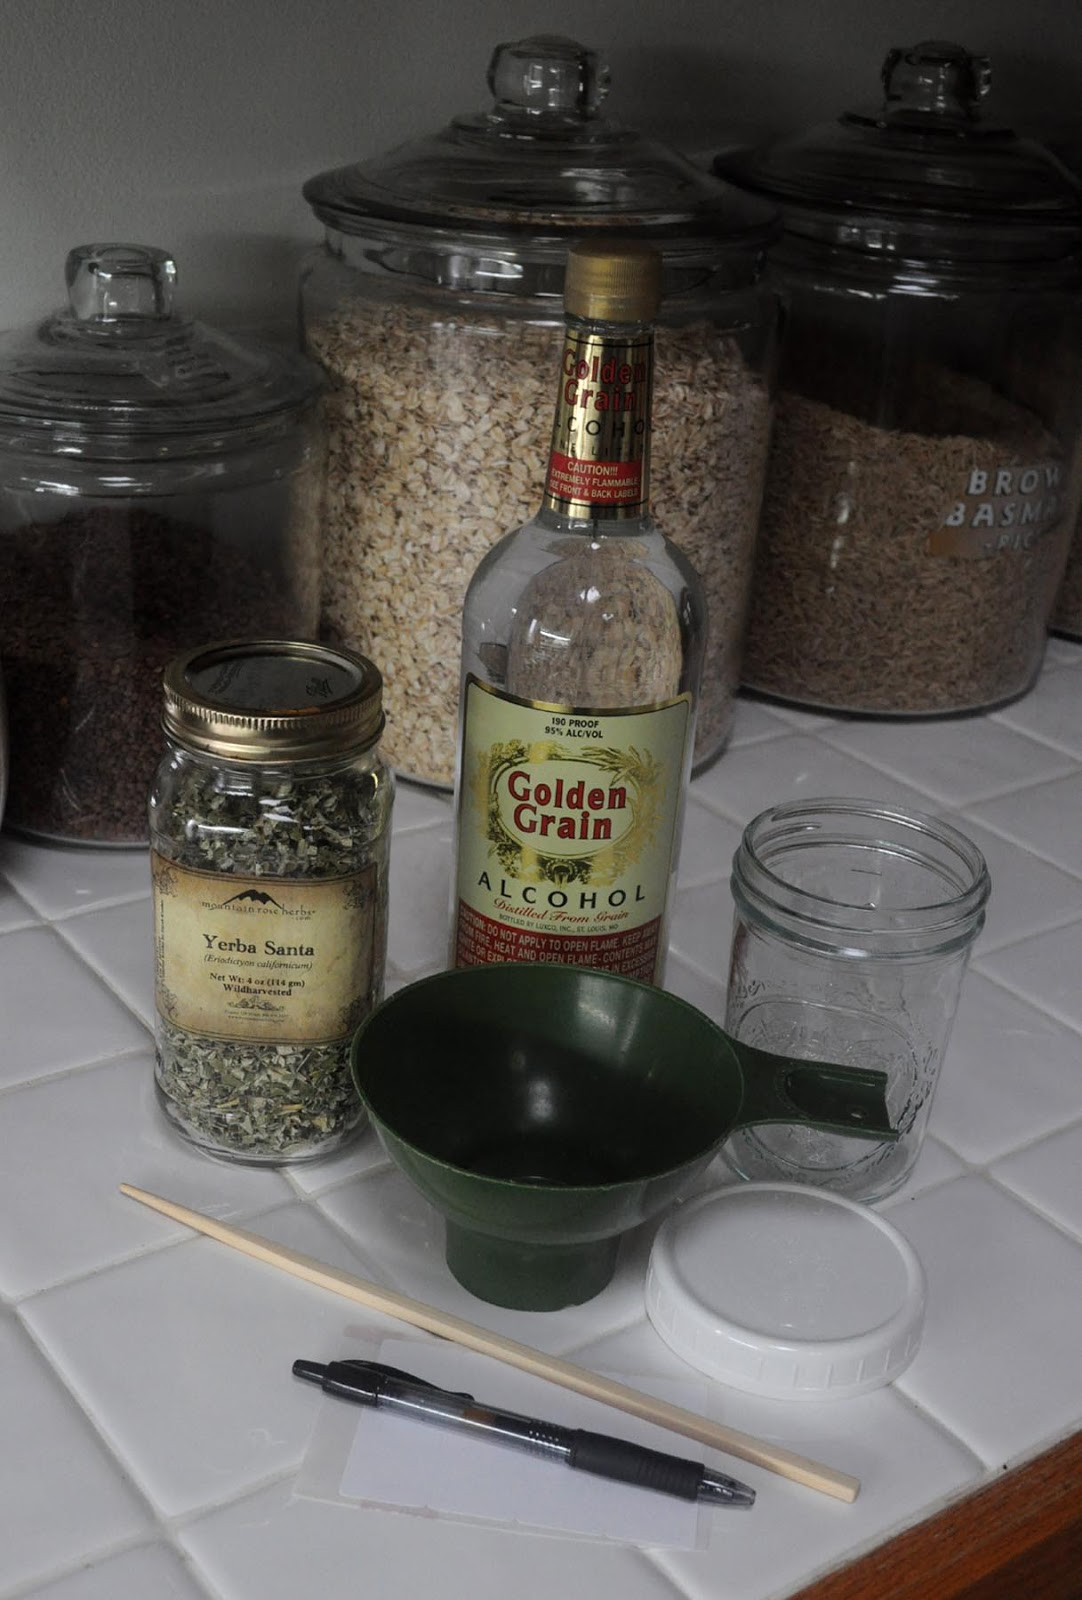 Best alcohol to use for tinctures